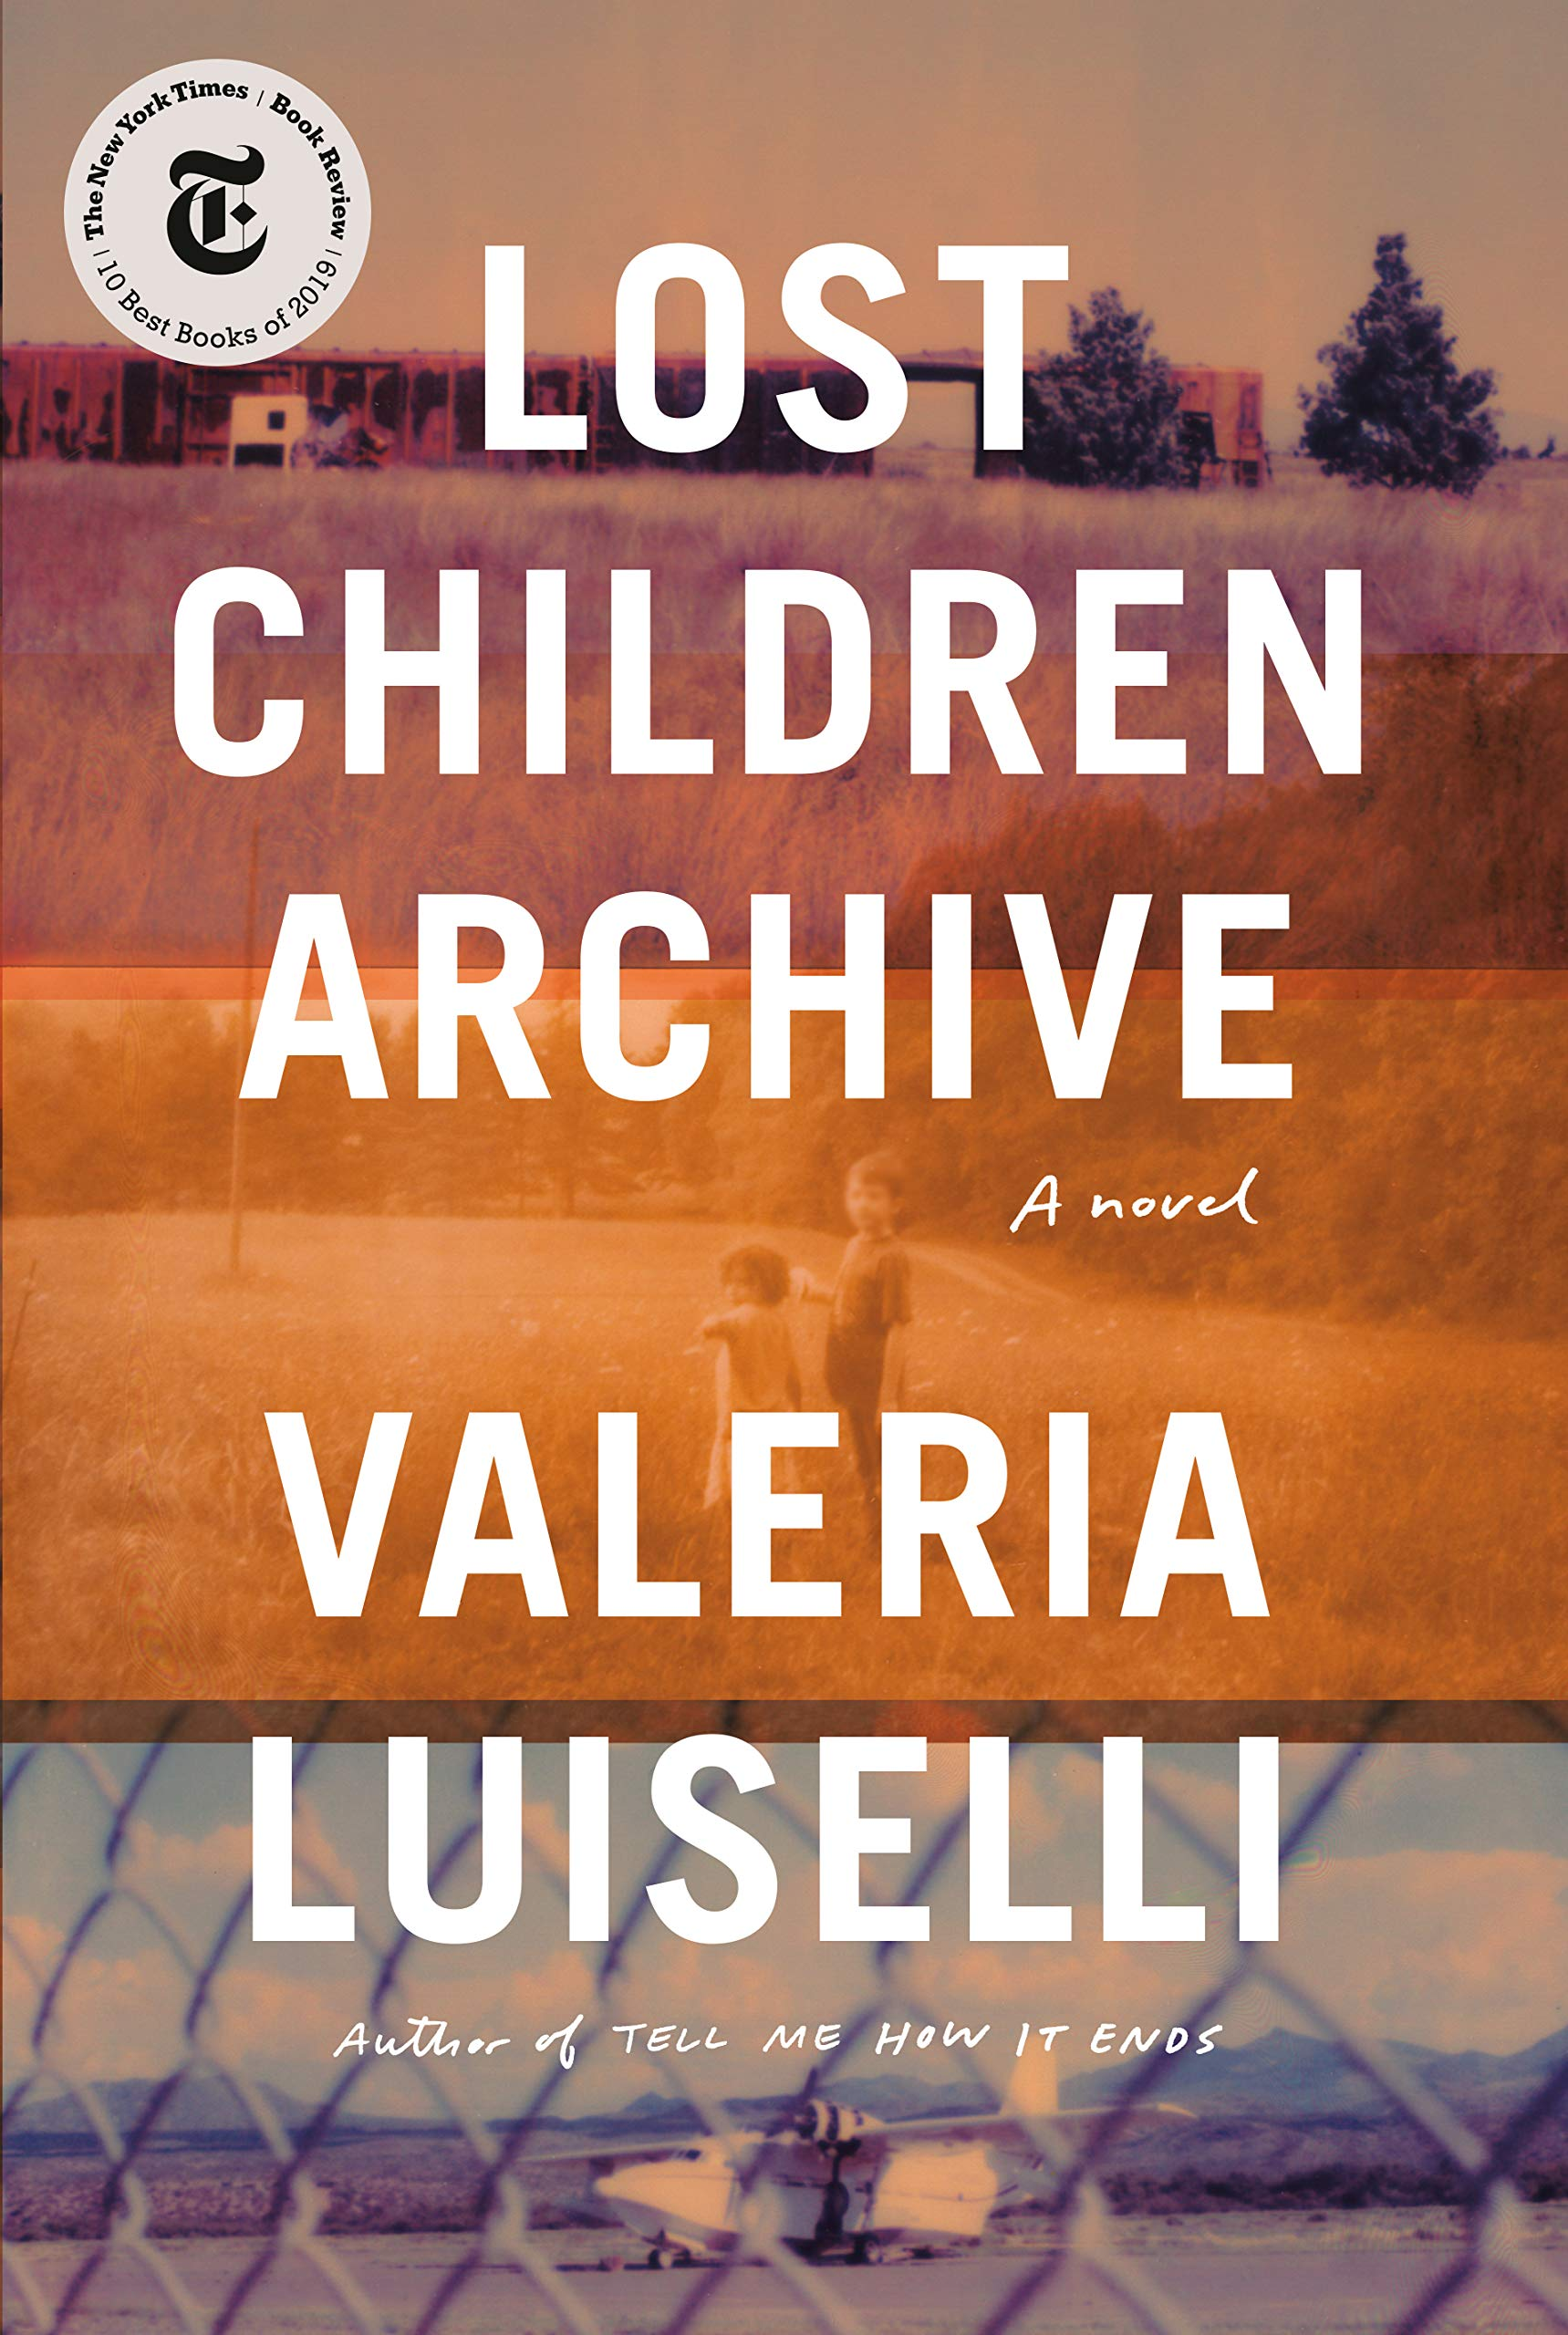 Dumbo Lit Book Club: Lost Children Archive by Valeria Luiselli (POSTPONED)